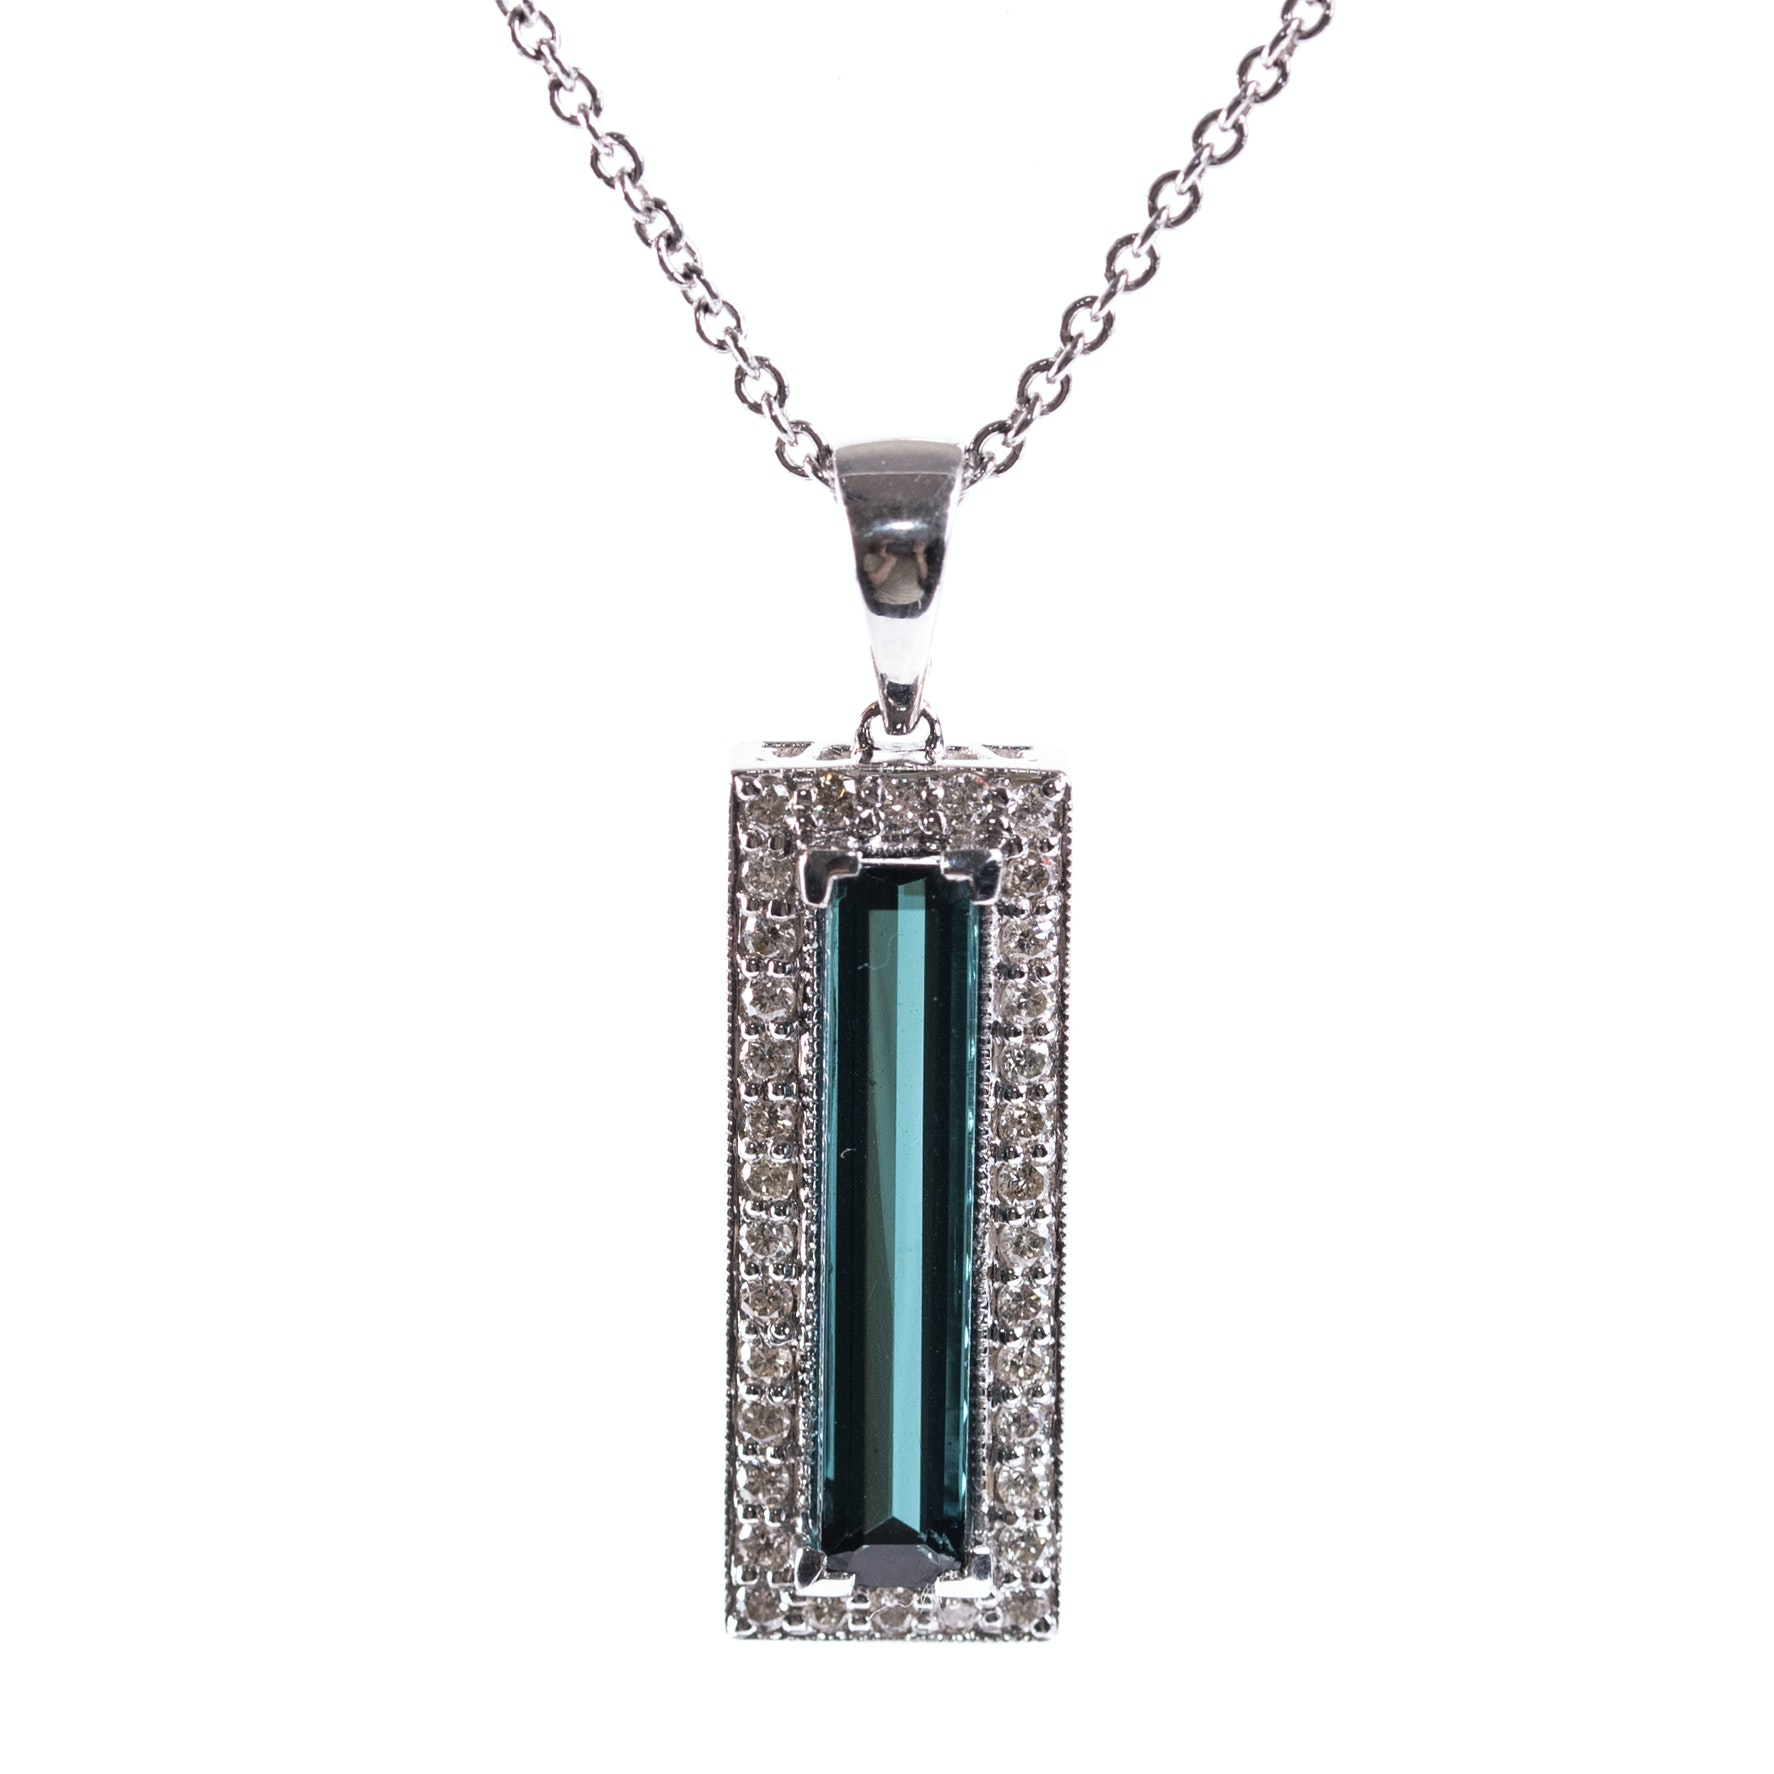 14K White Gold, 2.97 CT Tourmaline, and Diamond Pendant On Sterling Silver Chain